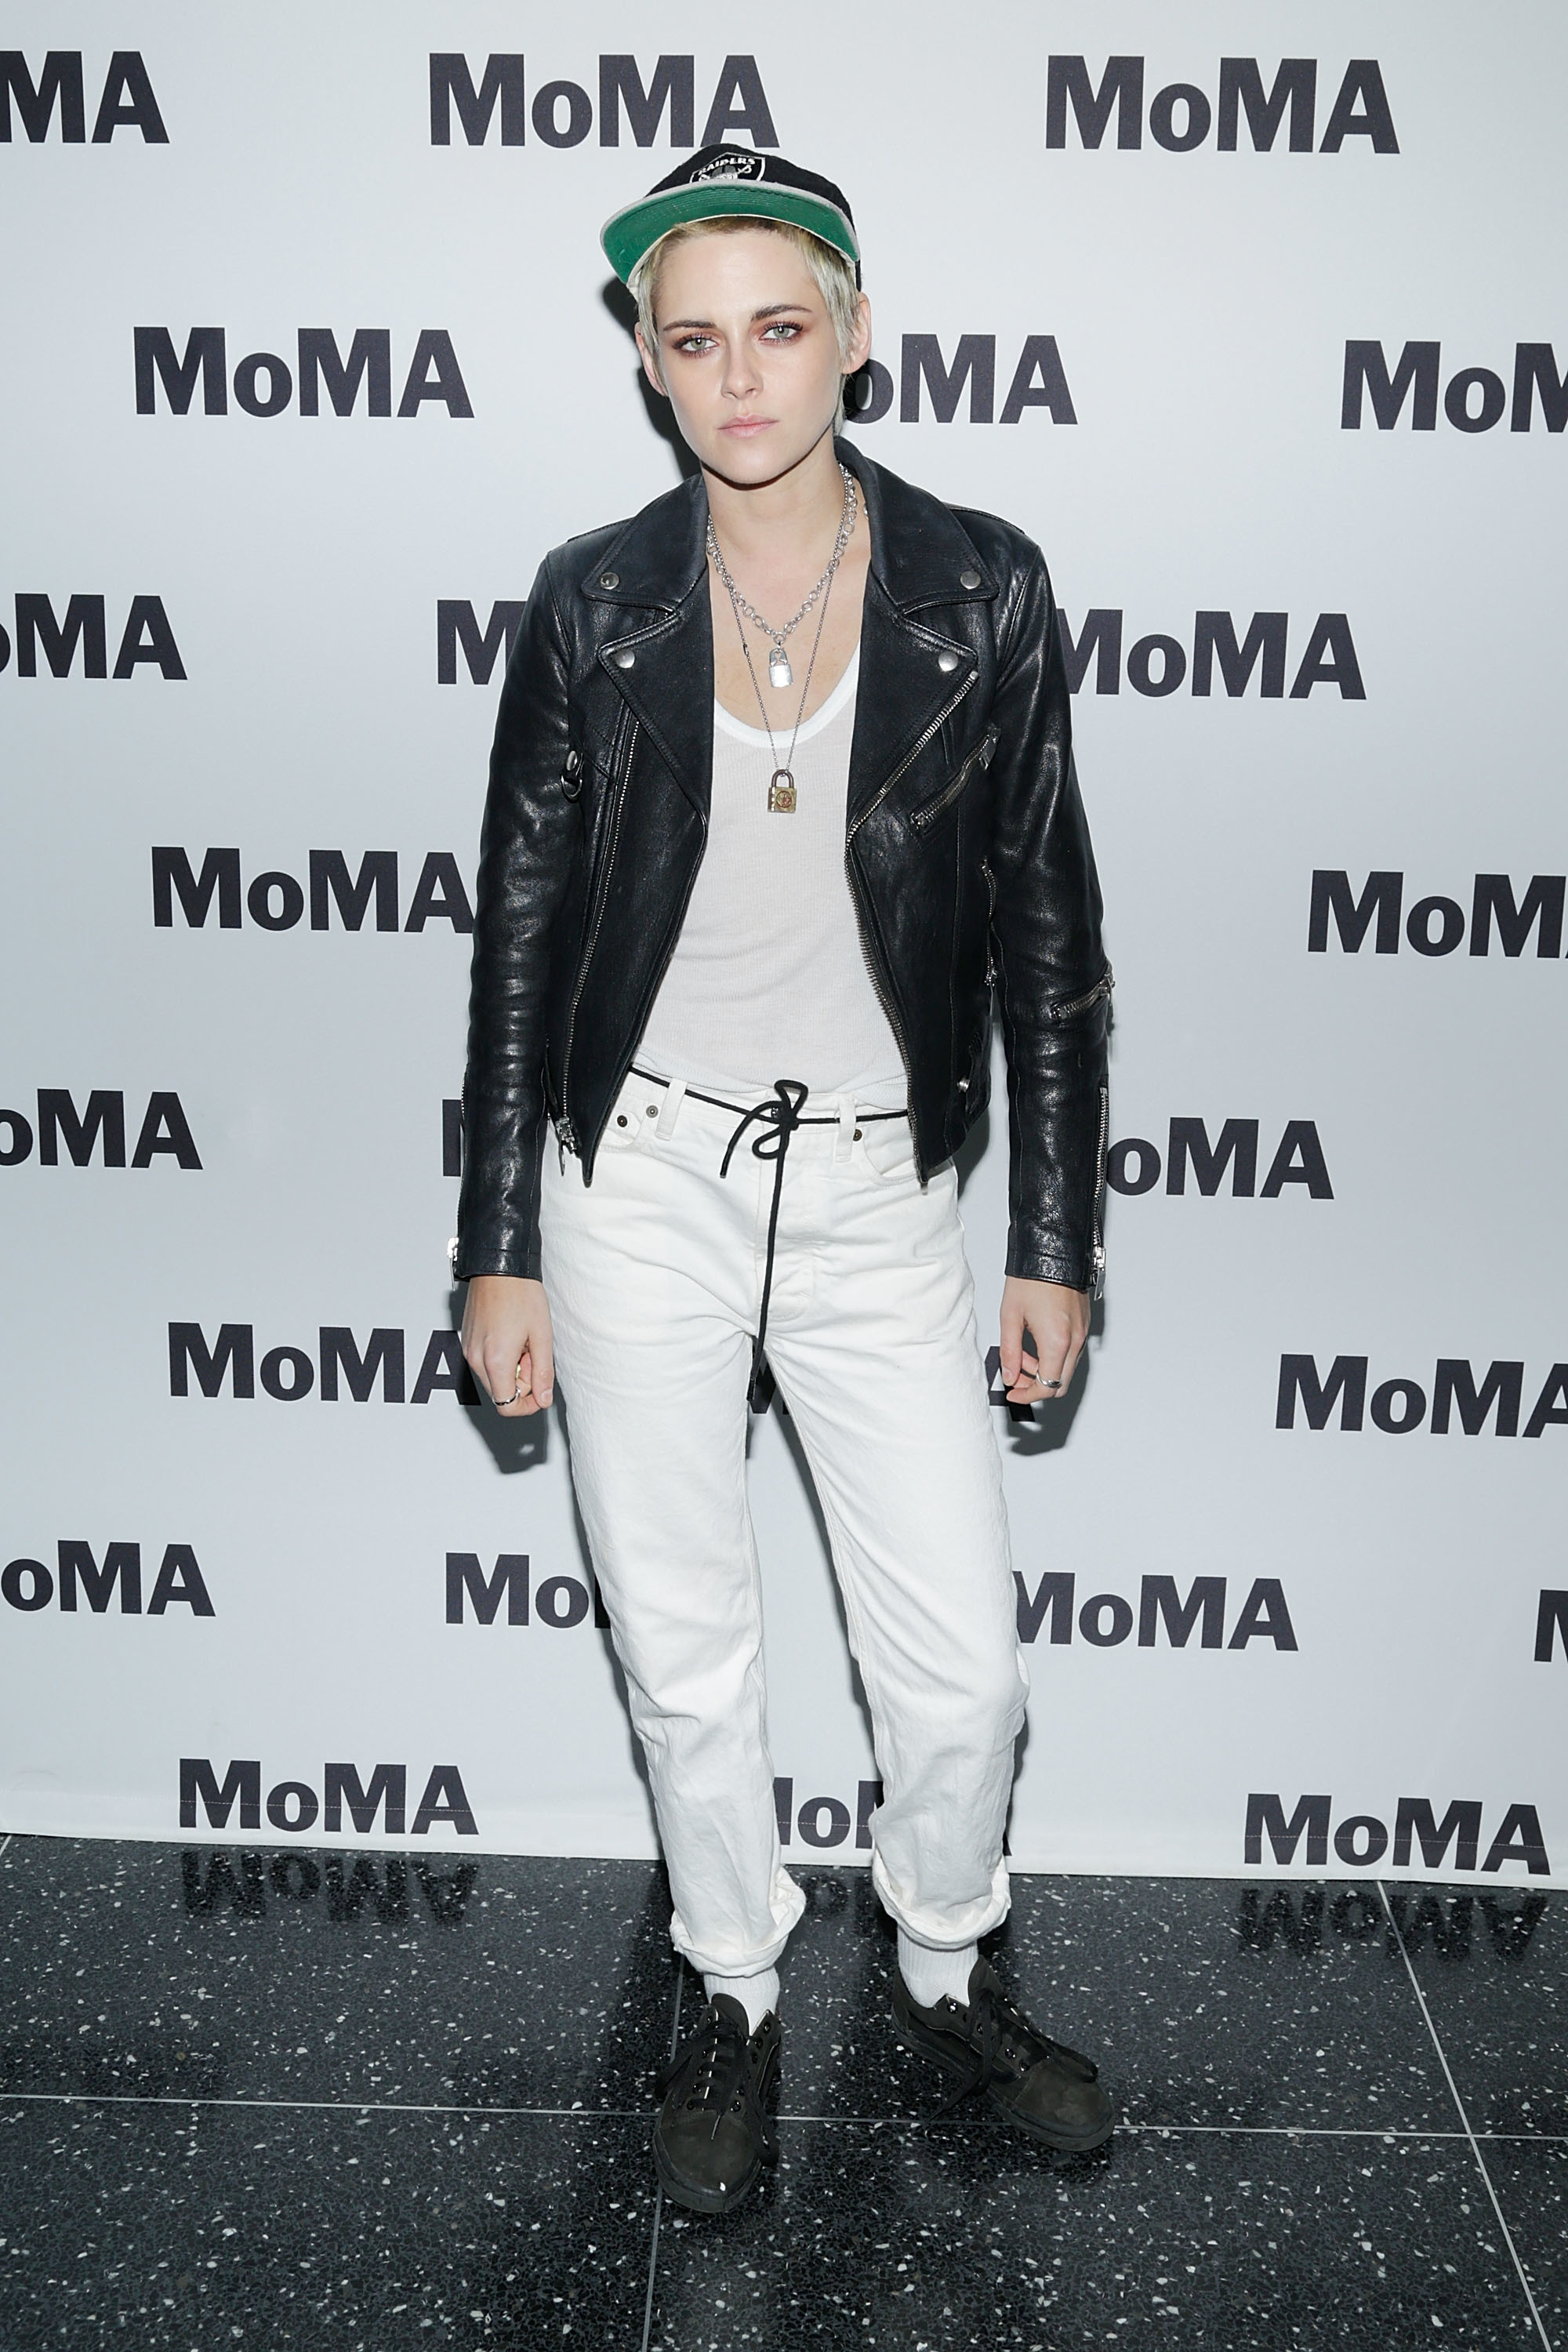 """Kristen Stewart attends the MOMA Screening of Refinery29's """"Come Swim"""" directed by Kristen Stewart at MOMA in New York City on Aug. 30, 2017."""